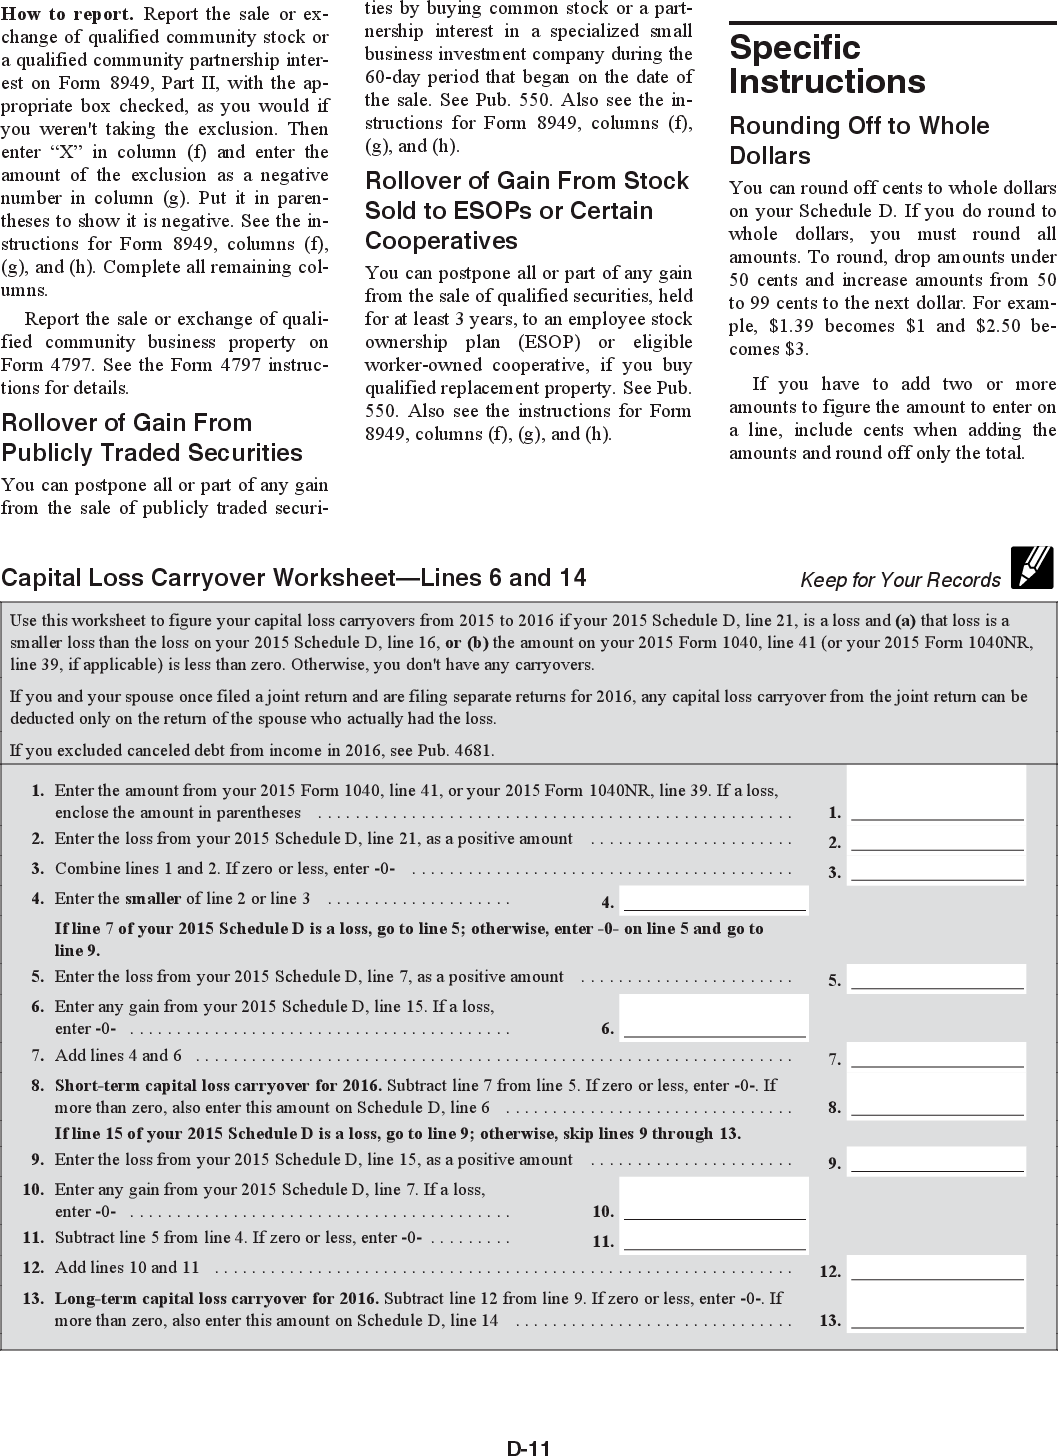 Worksheet Capital Loss Carryover Worksheet Grass